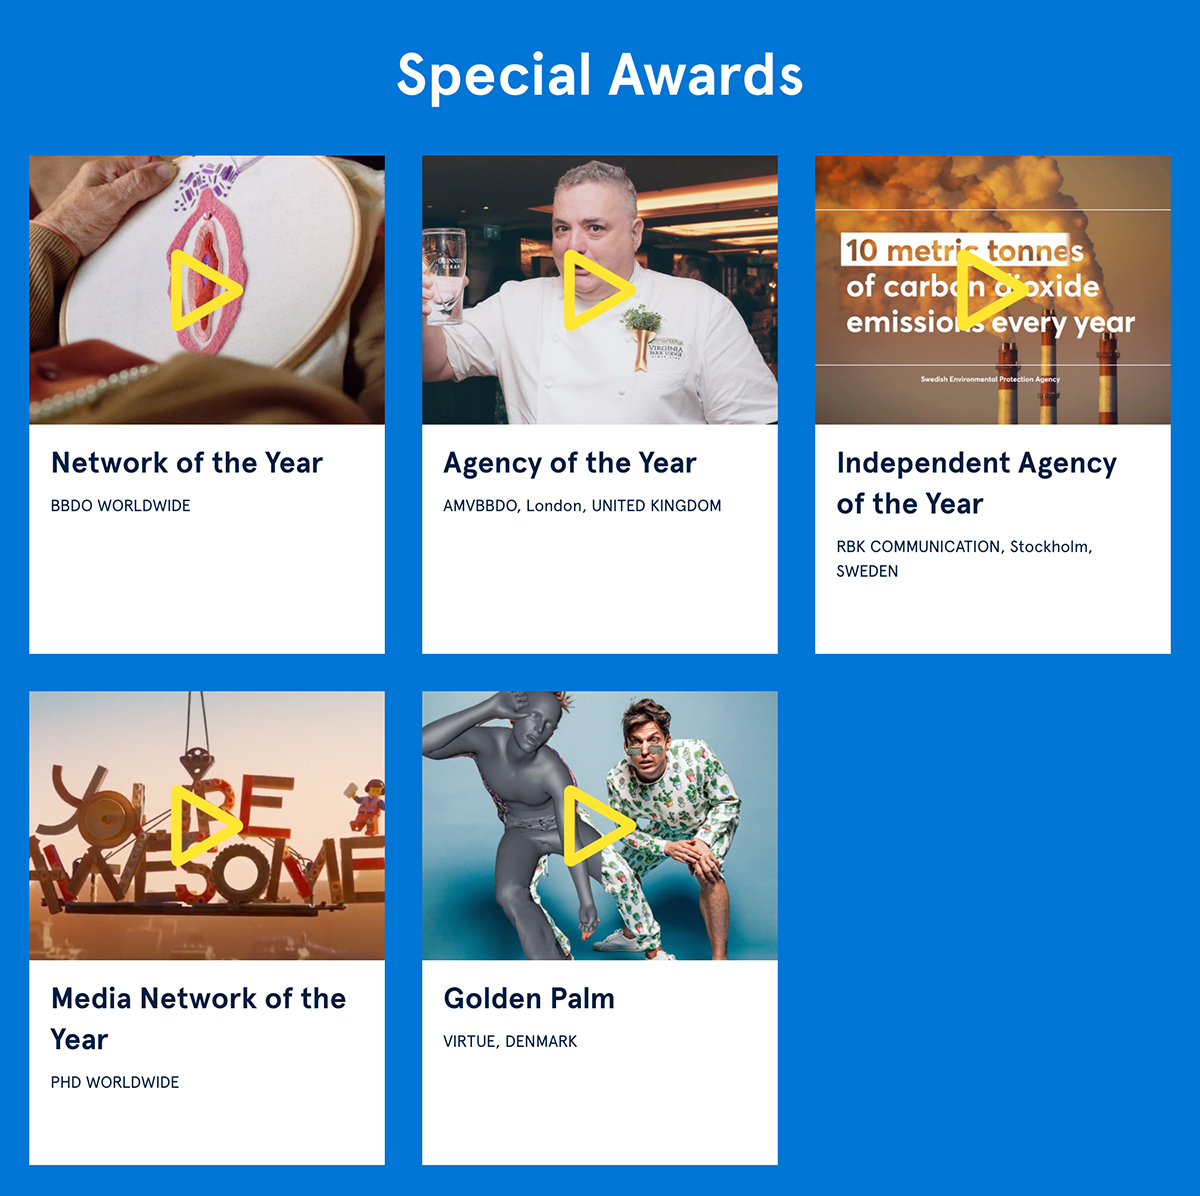 eurobest-2019-network-agency-media-network-holding-of-the-year